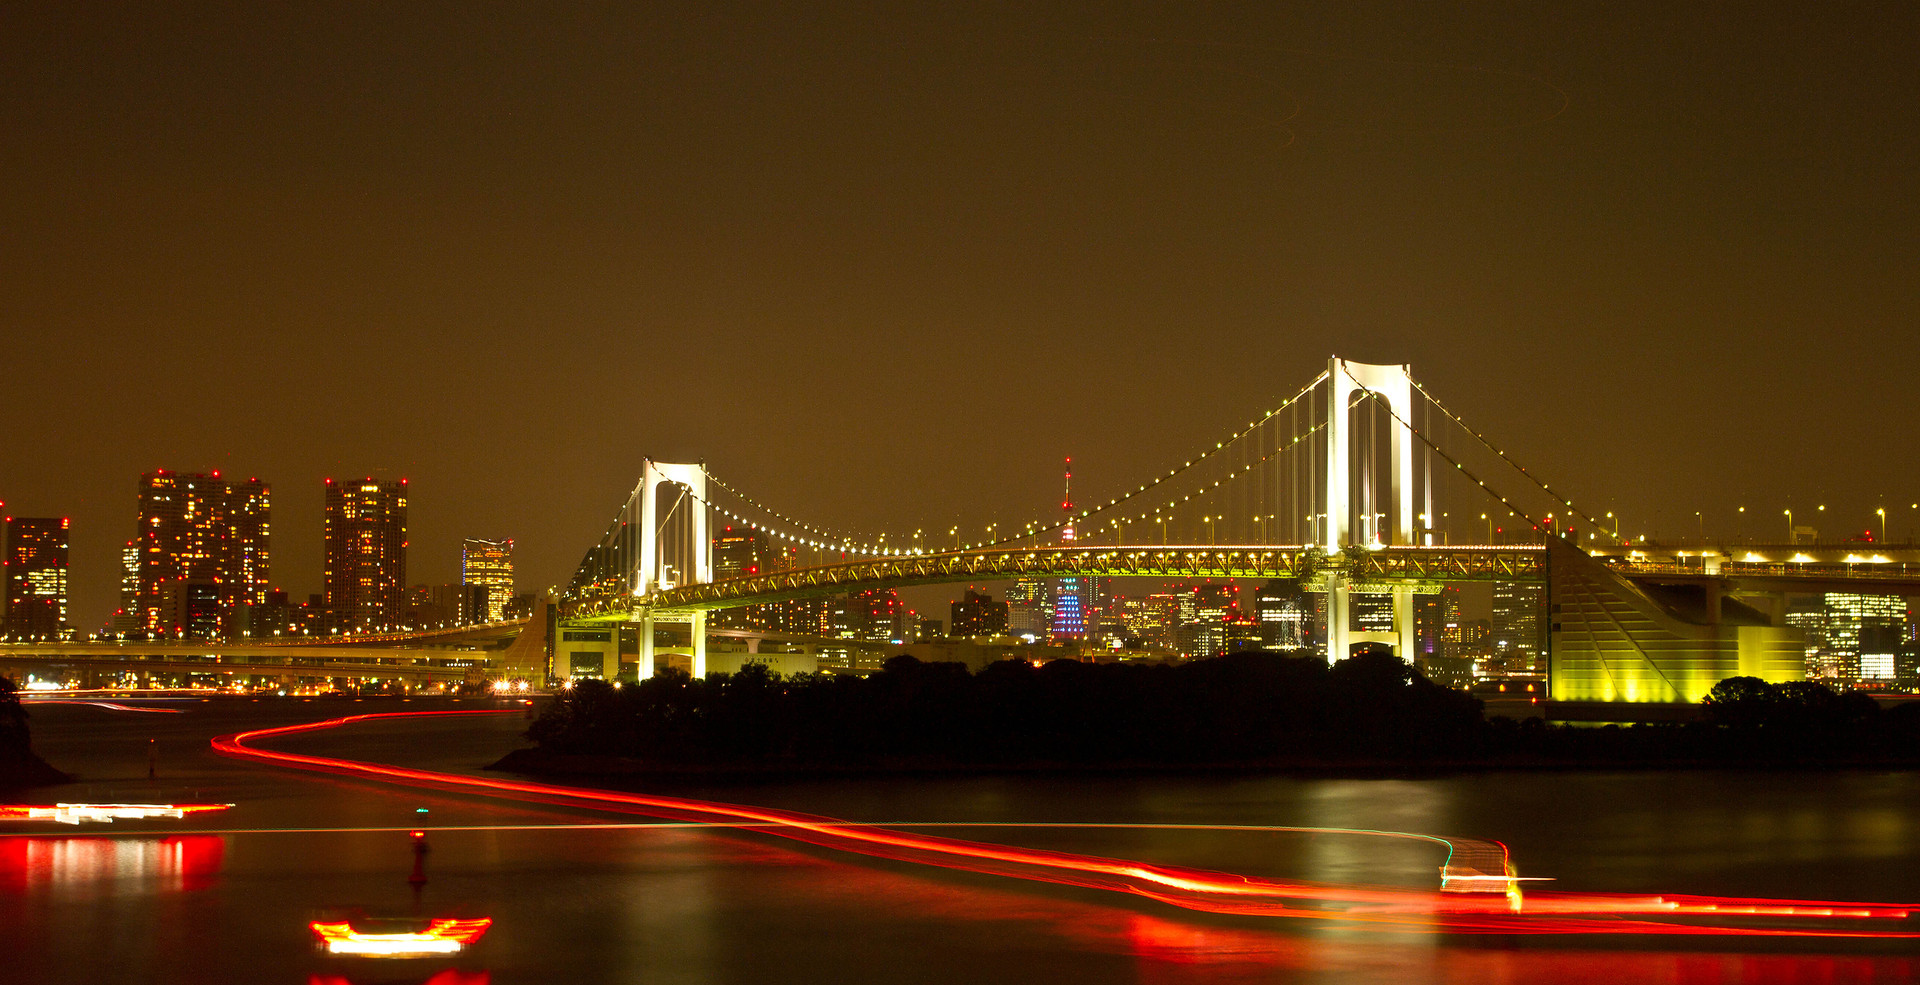 Rainbow bridge in tokyo with long light